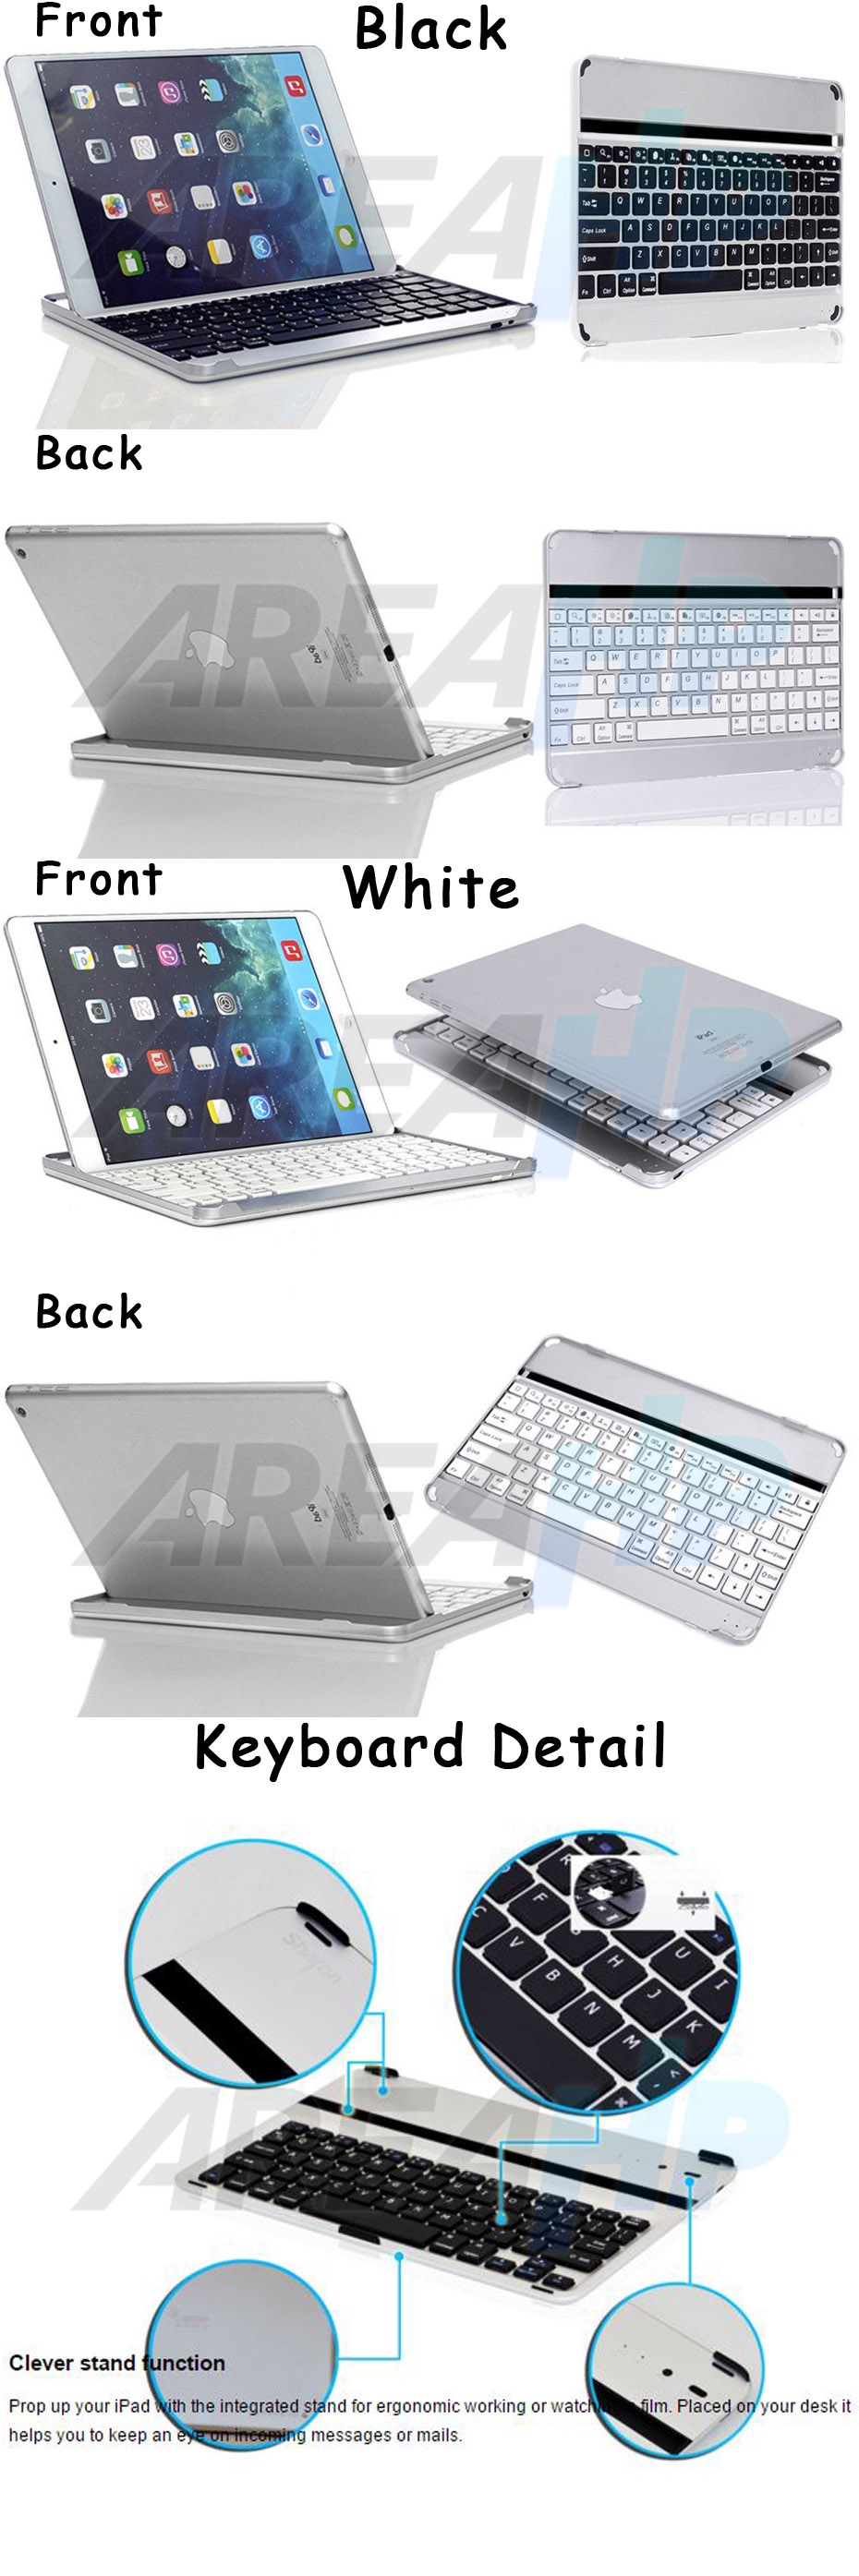 Ultra Slim Keyboard for iPad Air 2 Overview